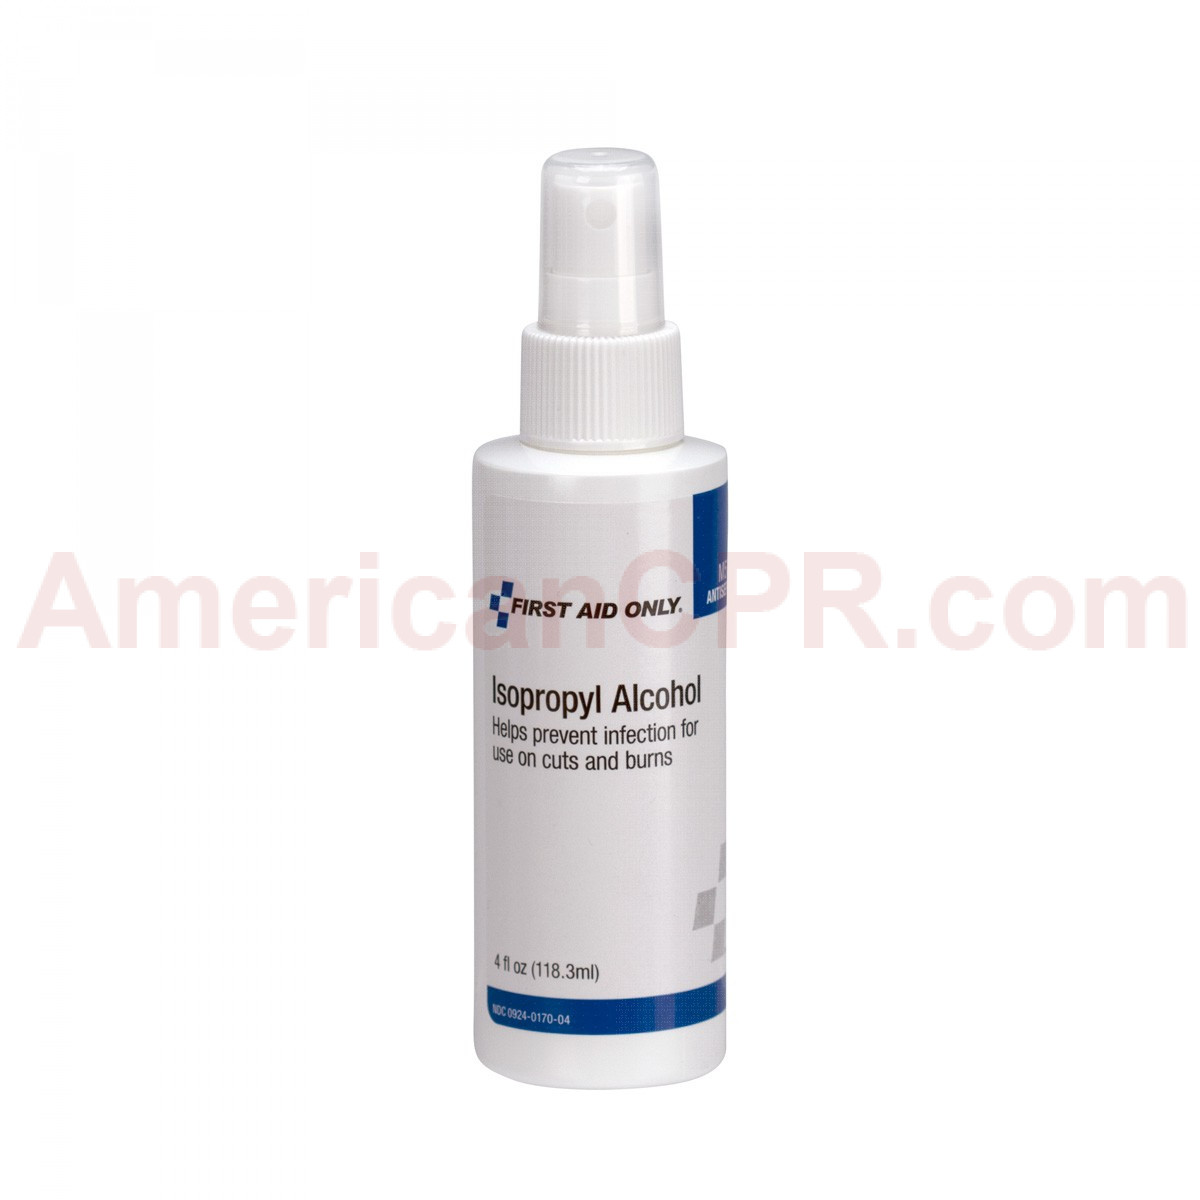 70% Isopropyl Alcohol spray bottle for effective infection fighter